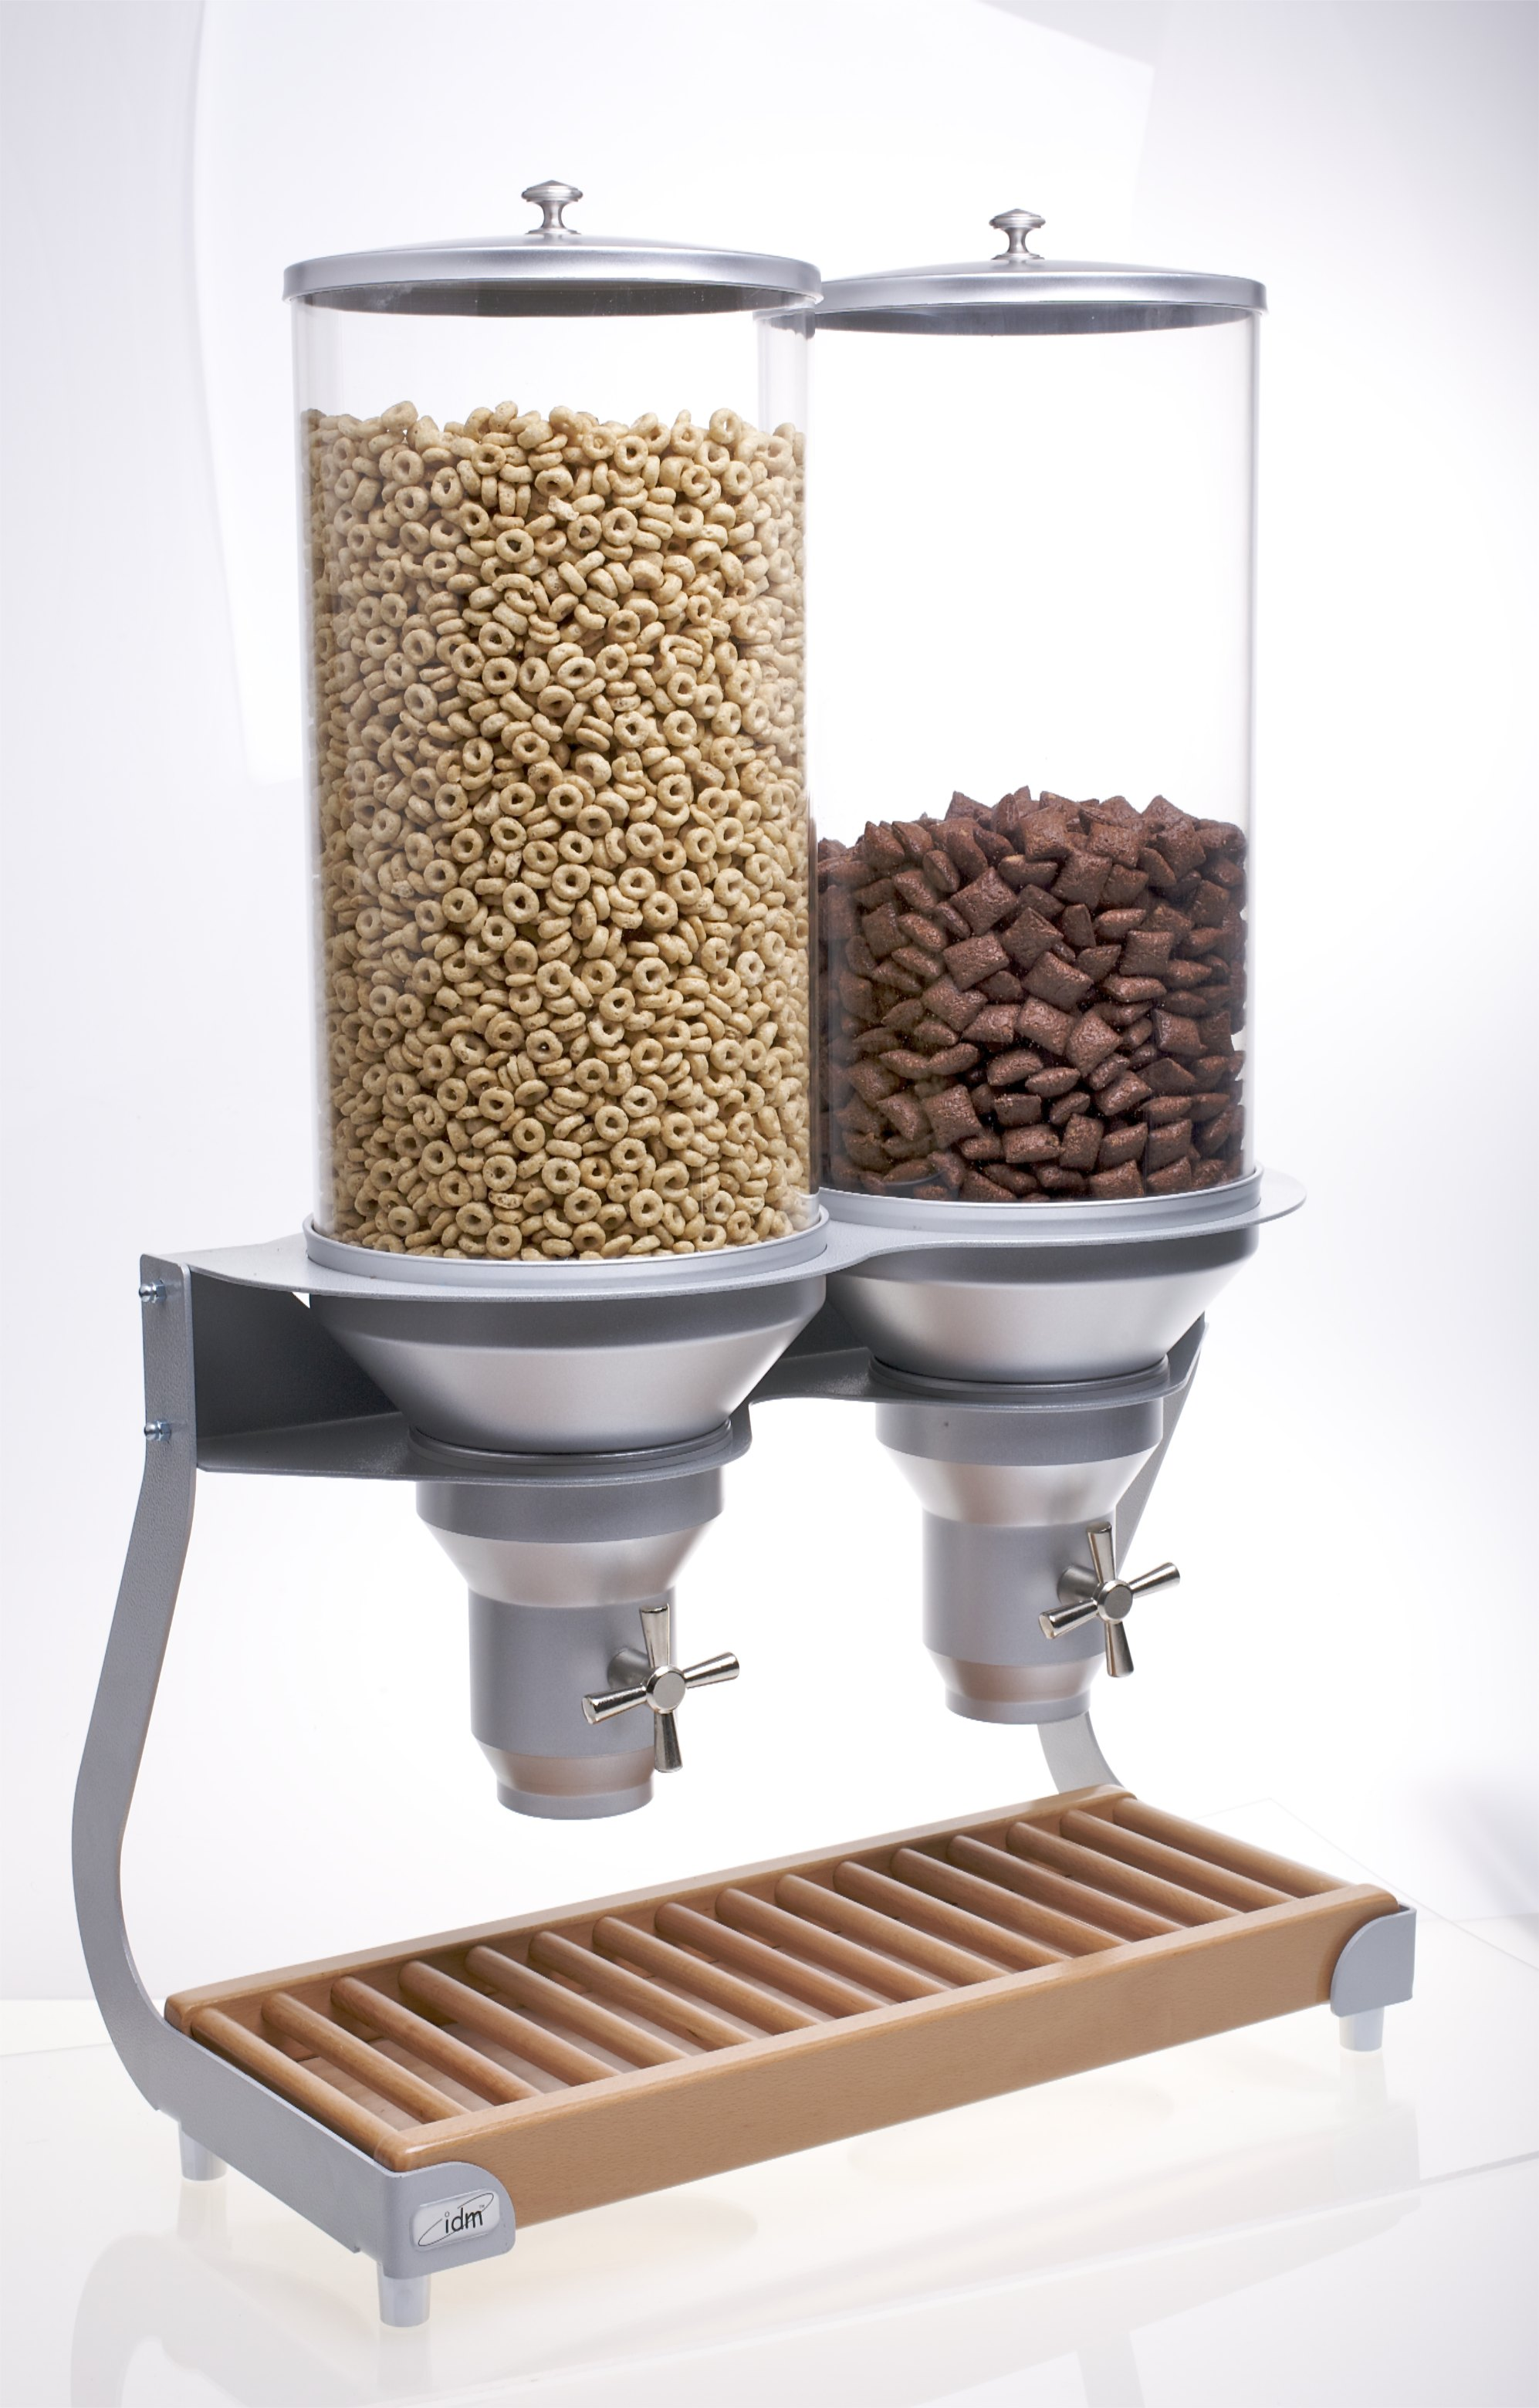 QEC offers a unique range of dry food dispensers for commercial, retail and private use.Utilizing high quality materials and exceptional designs - ACD400 Australian Distributor.